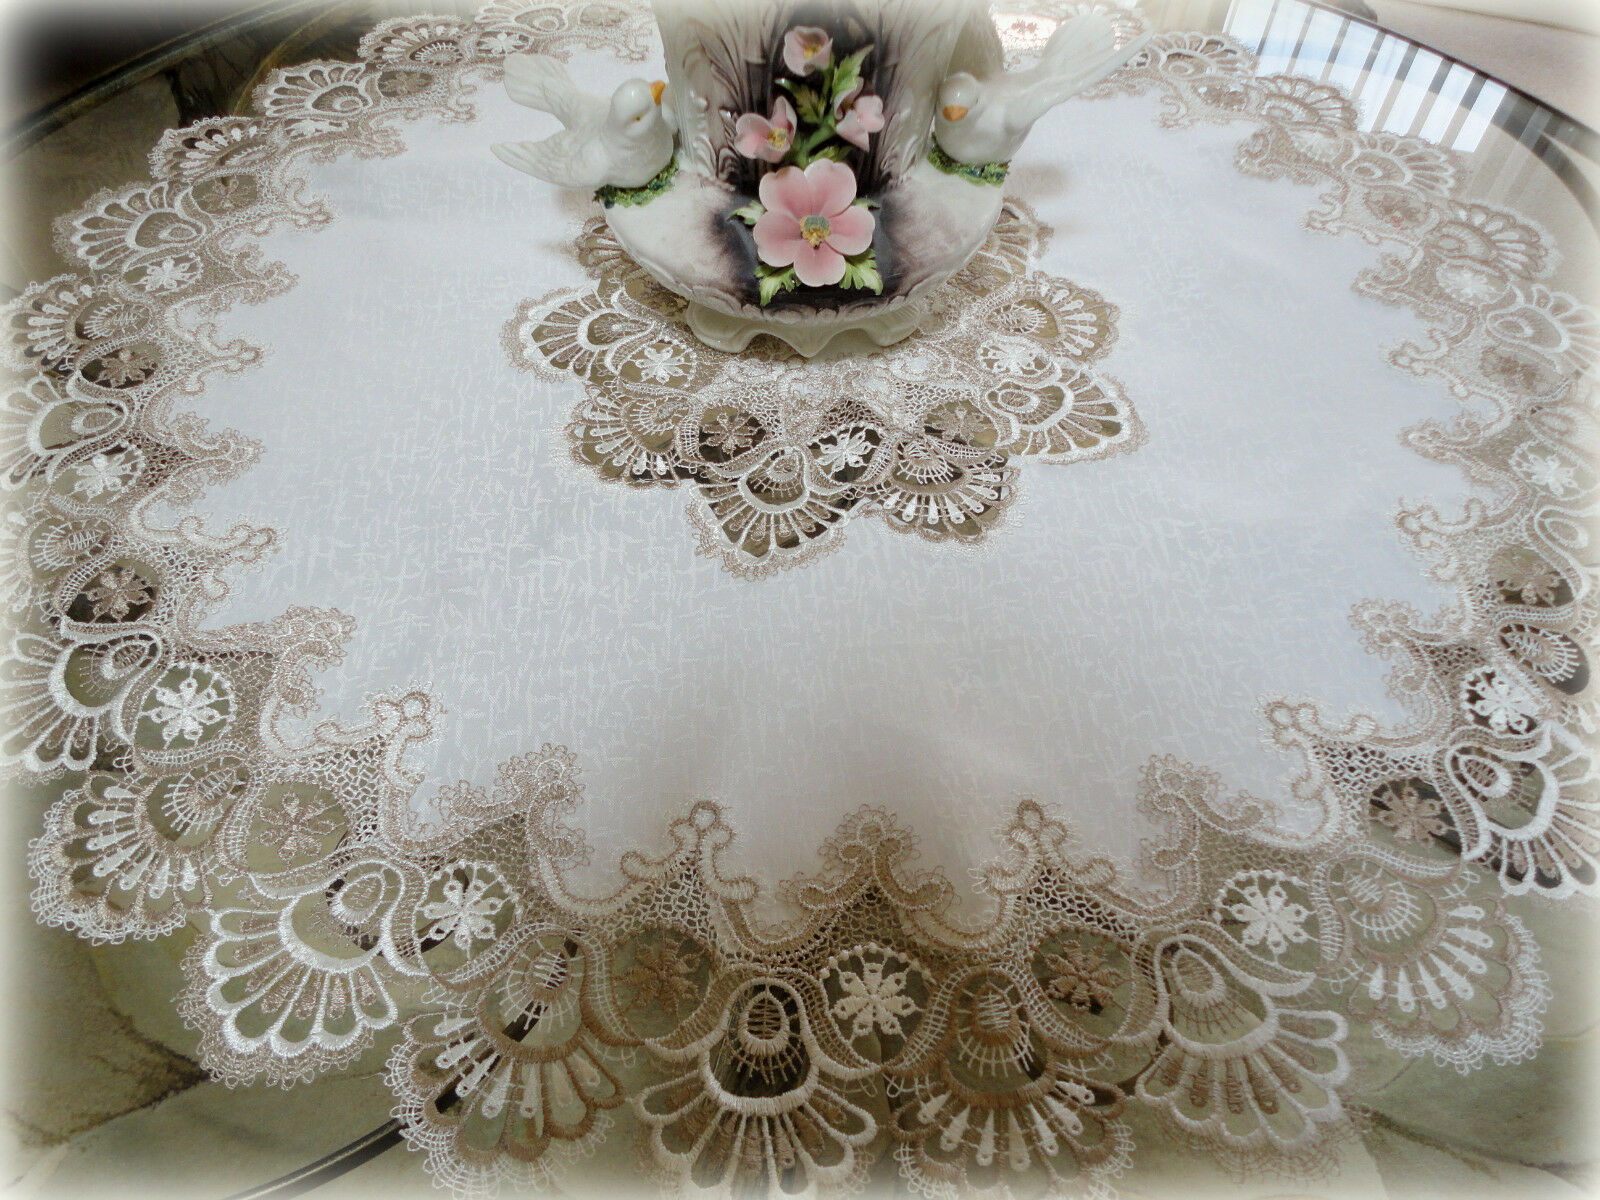 Купить 36 X-Large Lace Doily Table Topper Taupe Neutrals Antique White Tablecloth